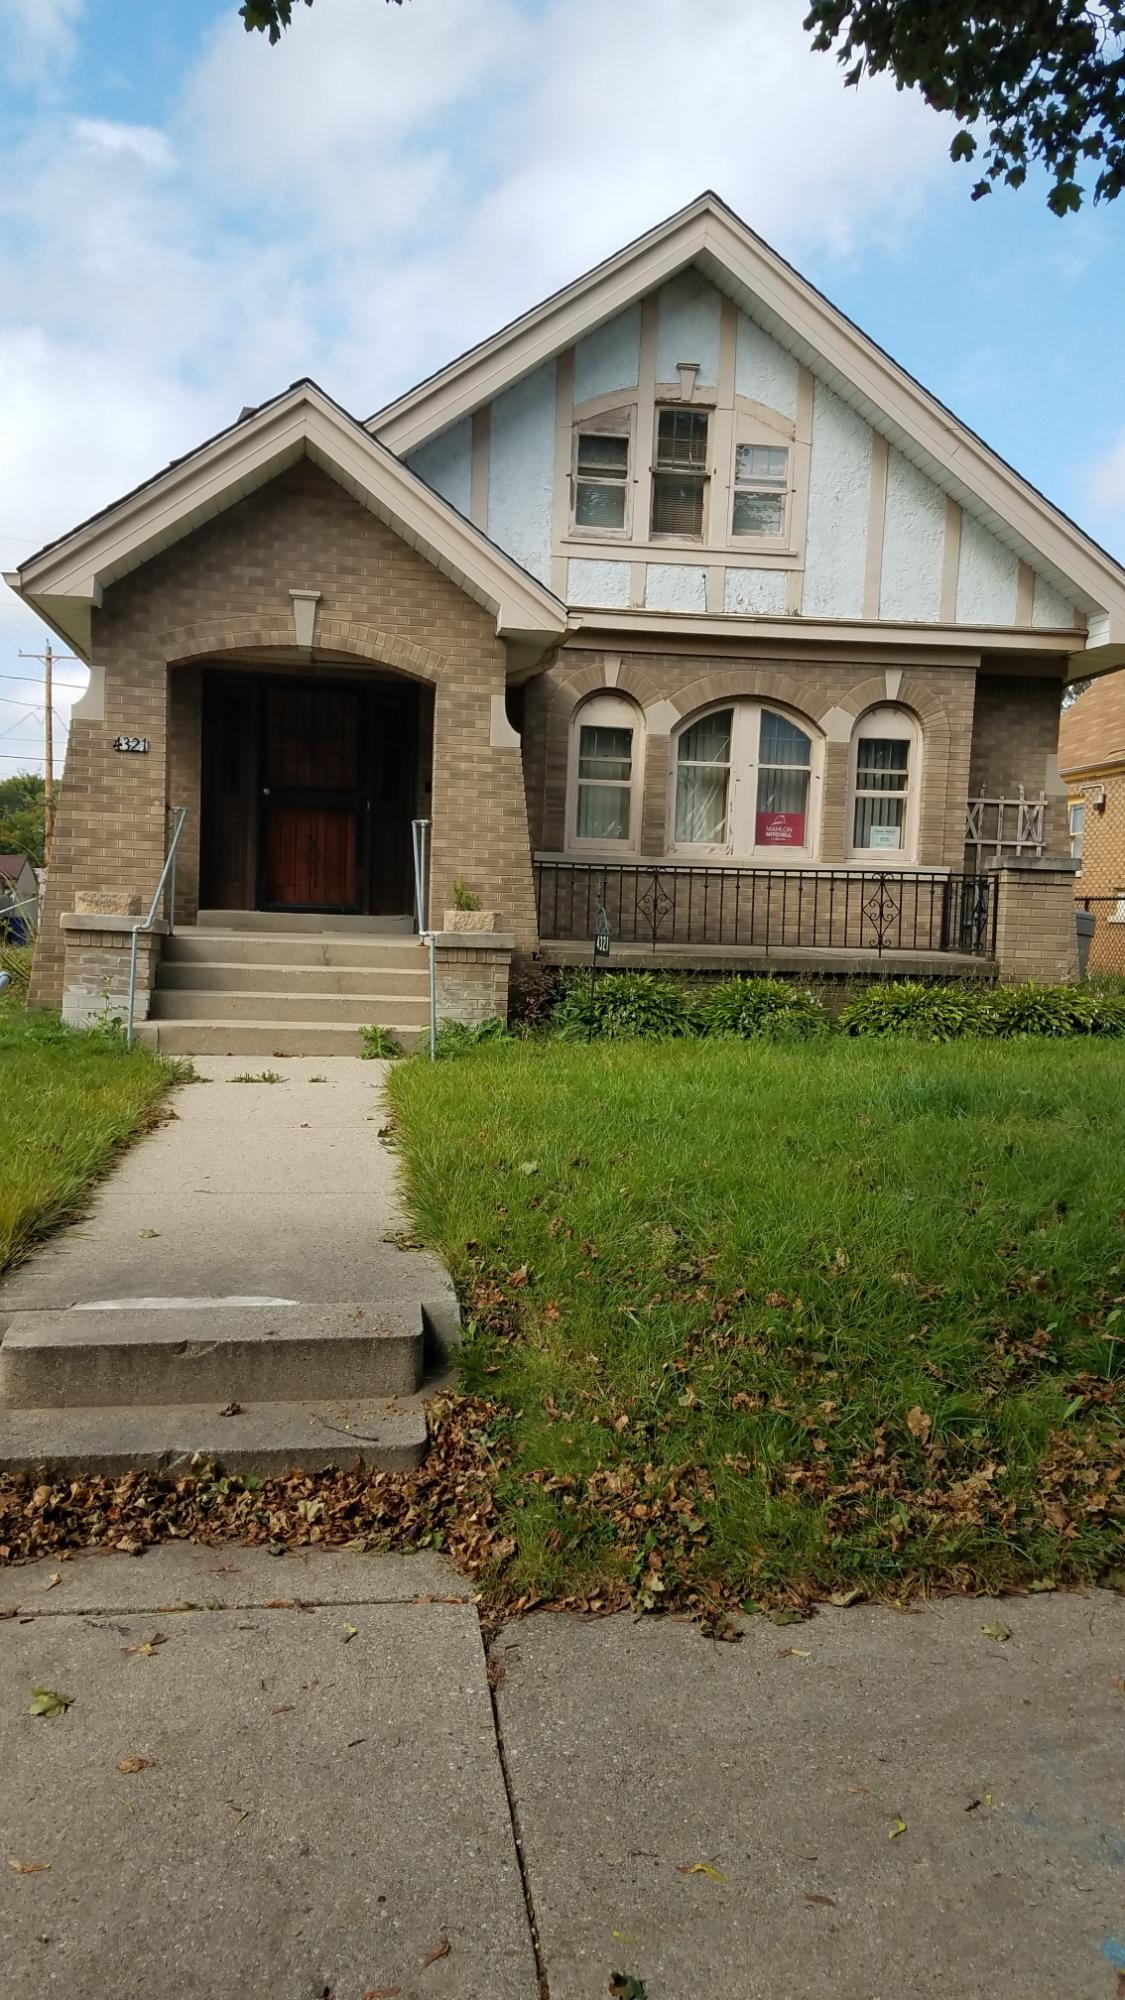 4321 28th St, Milwaukee, Wisconsin 53216, 2 Bedrooms Bedrooms, 6 Rooms Rooms,1 BathroomBathrooms,Two-Family,For Sale,28th St,1,1626878